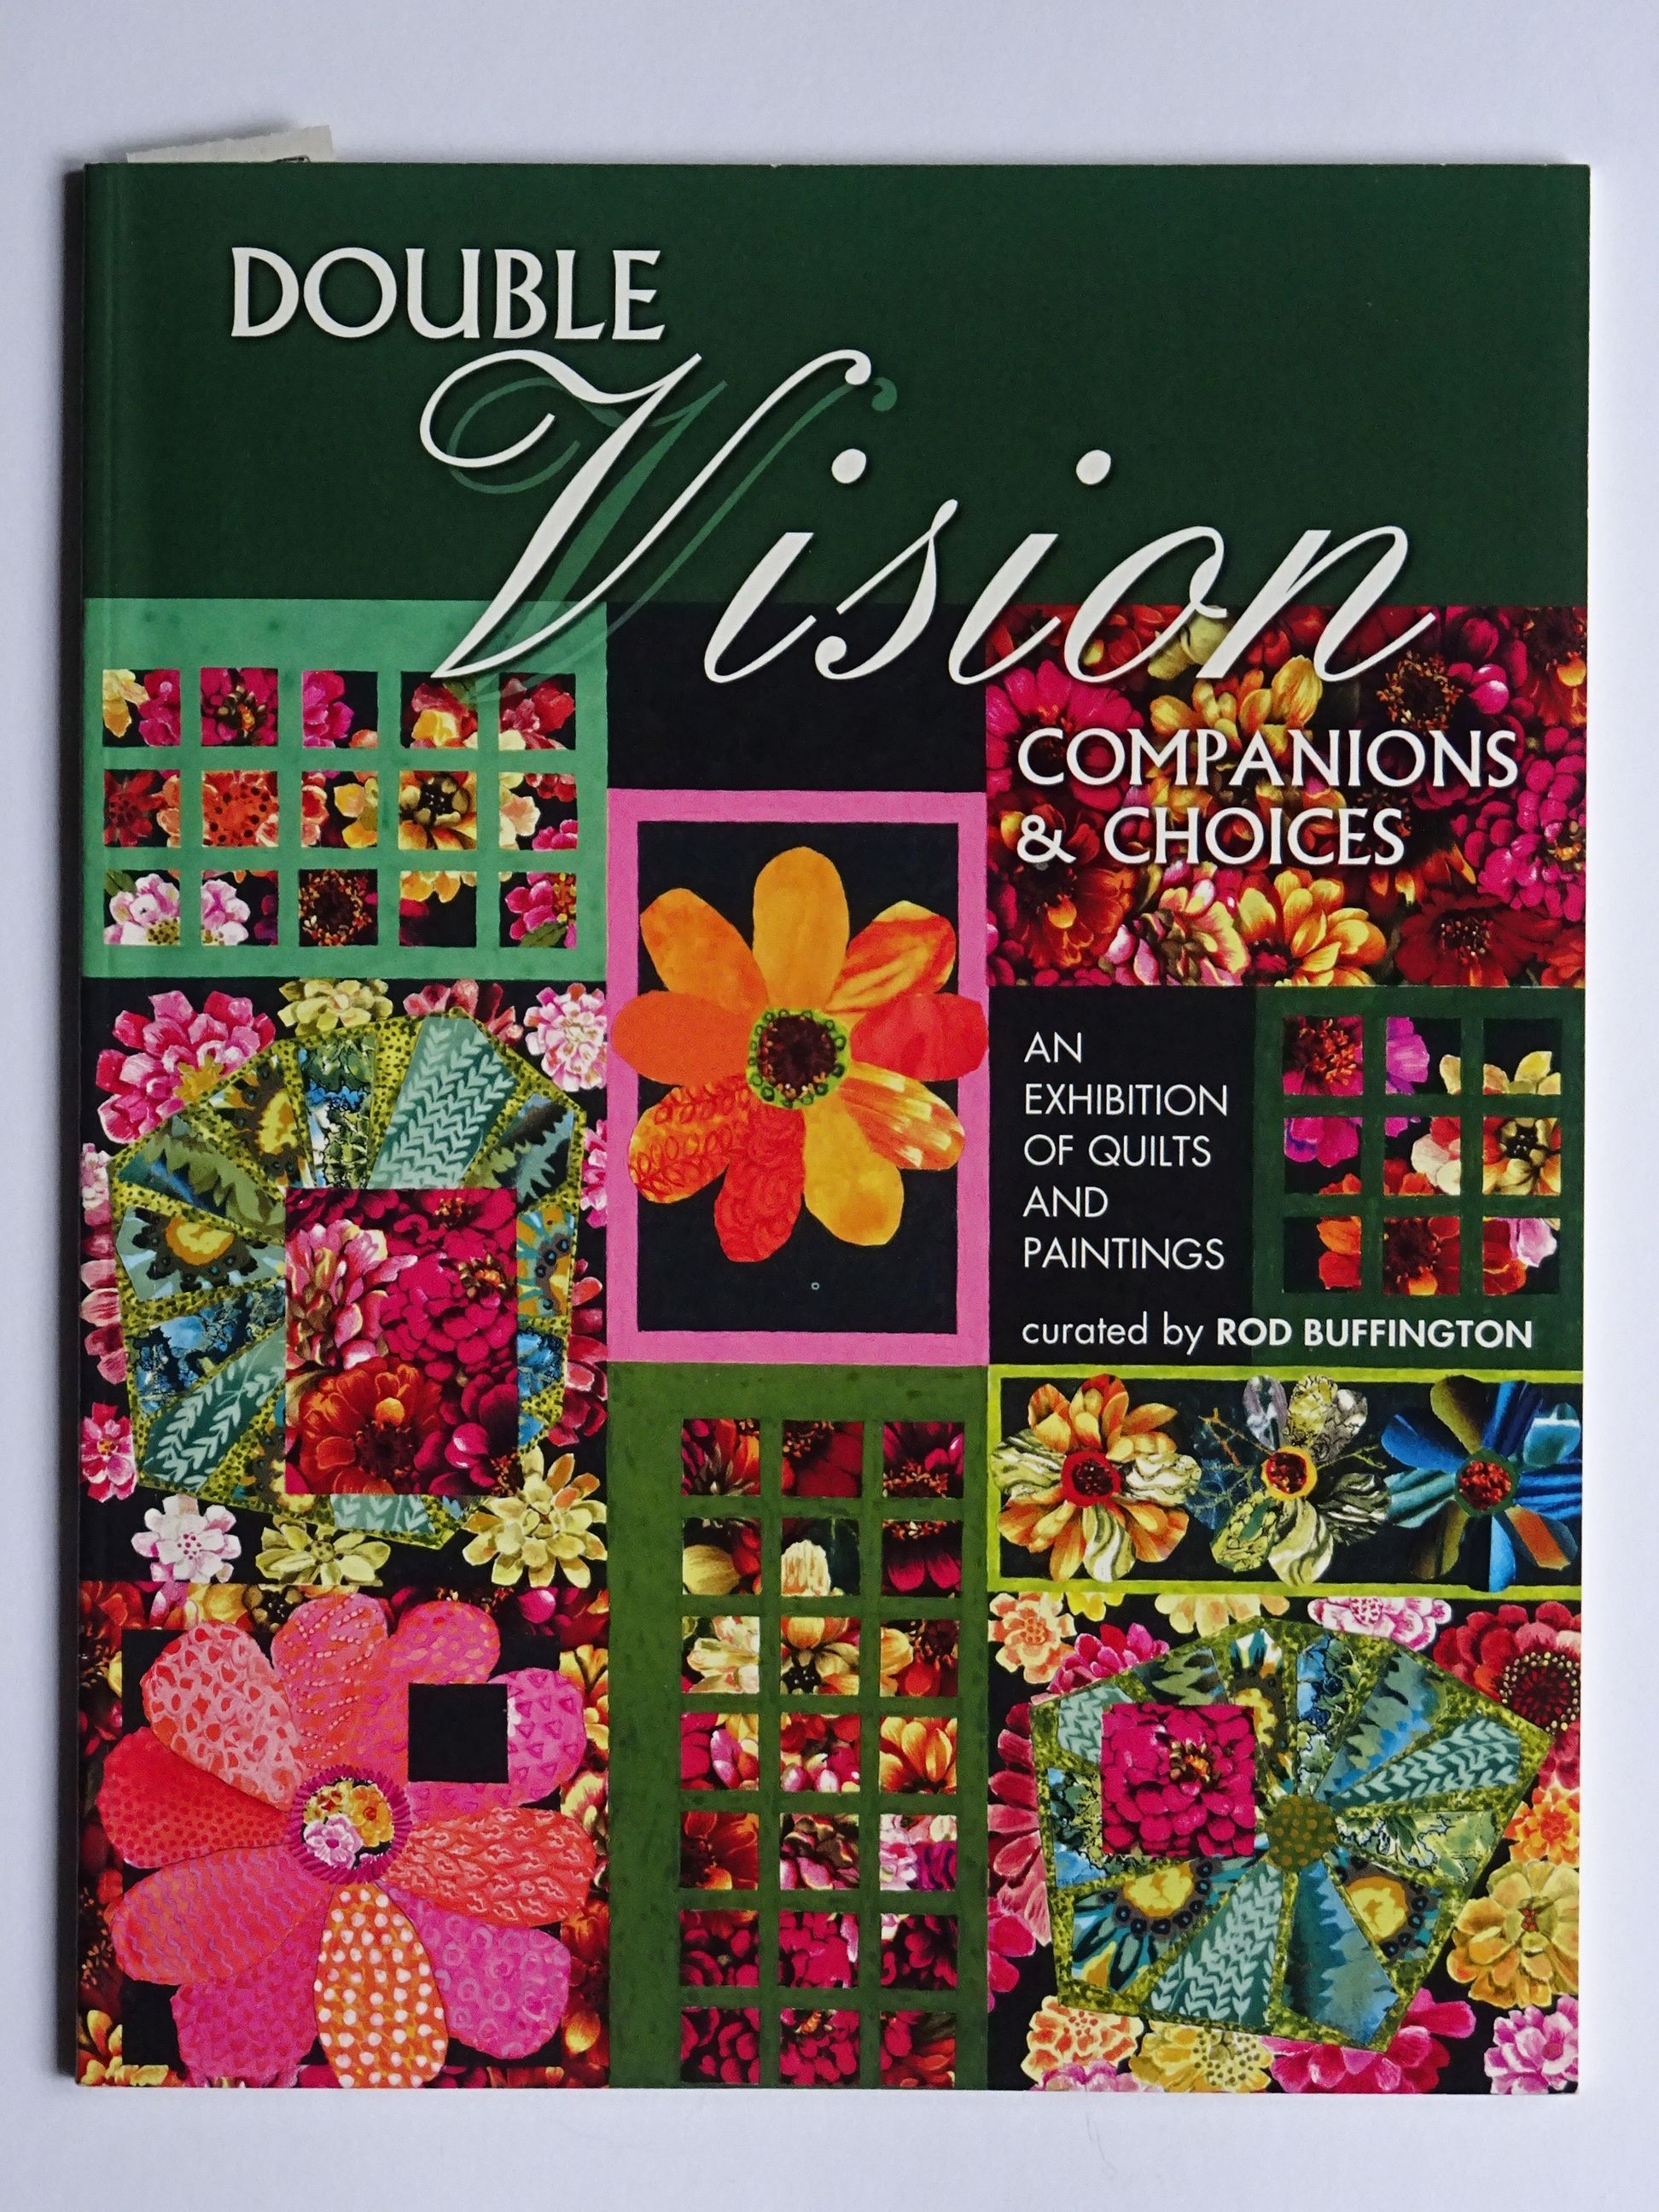 Patchwork Katalog - Ed. Russell, Marjorie L. - Double Vision Companions & Choices